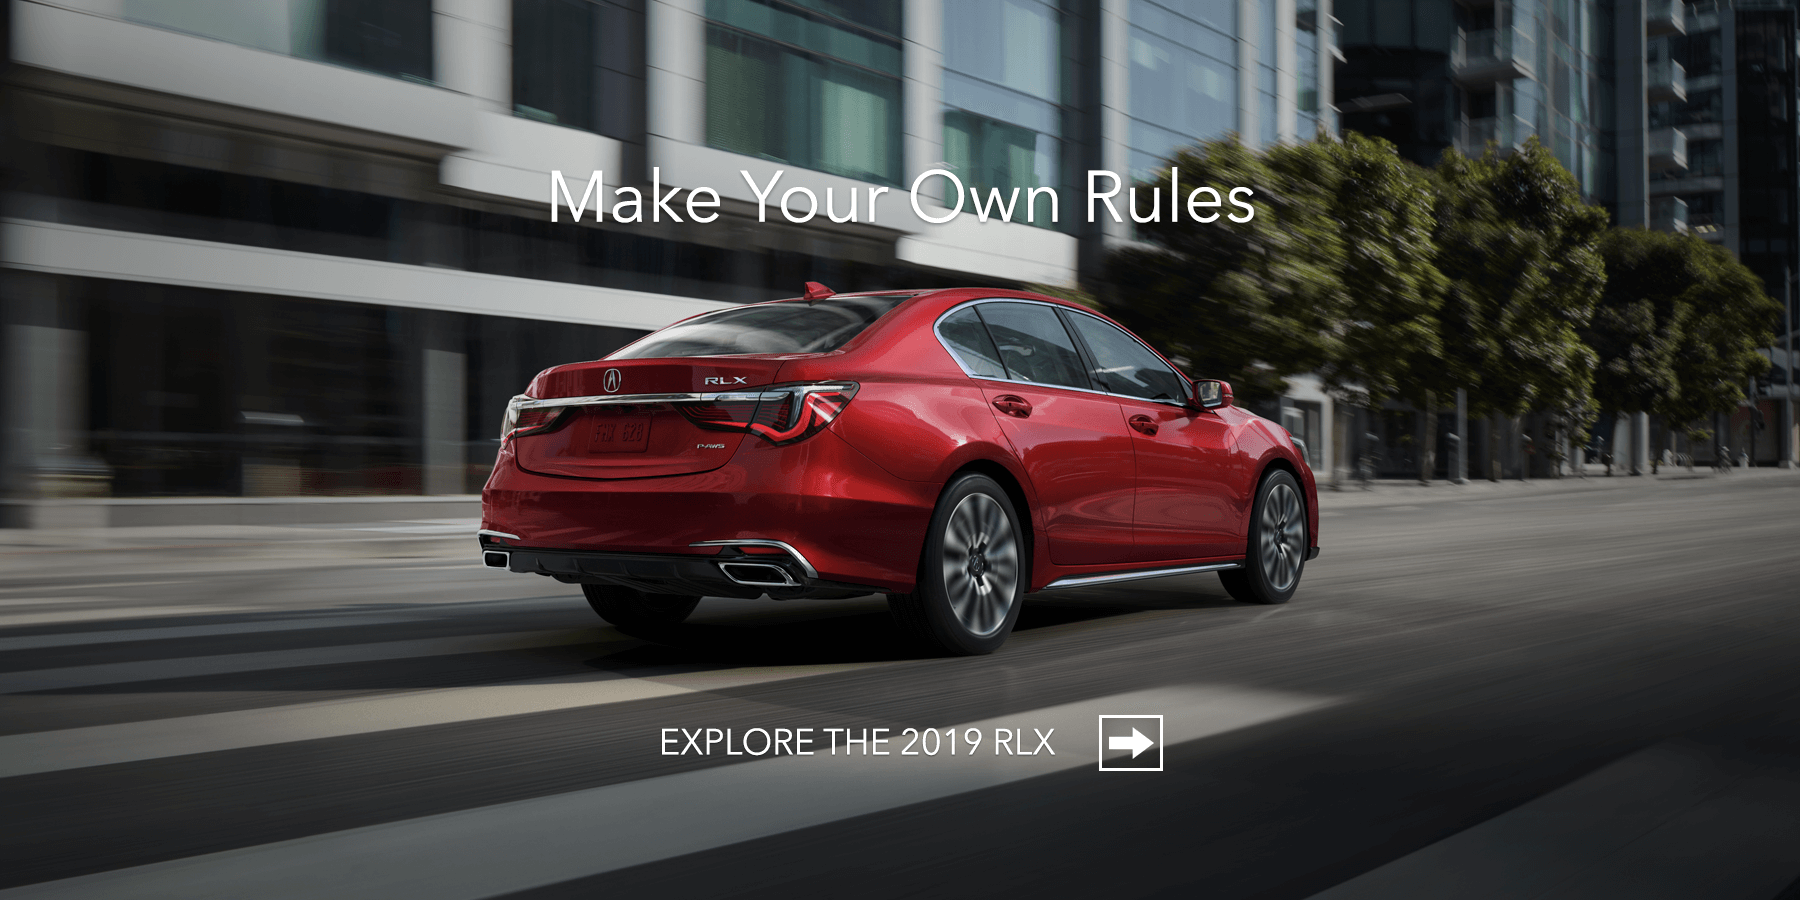 2019 Acura RLX Brilliant Red Metallic Rear Angle HP Slide